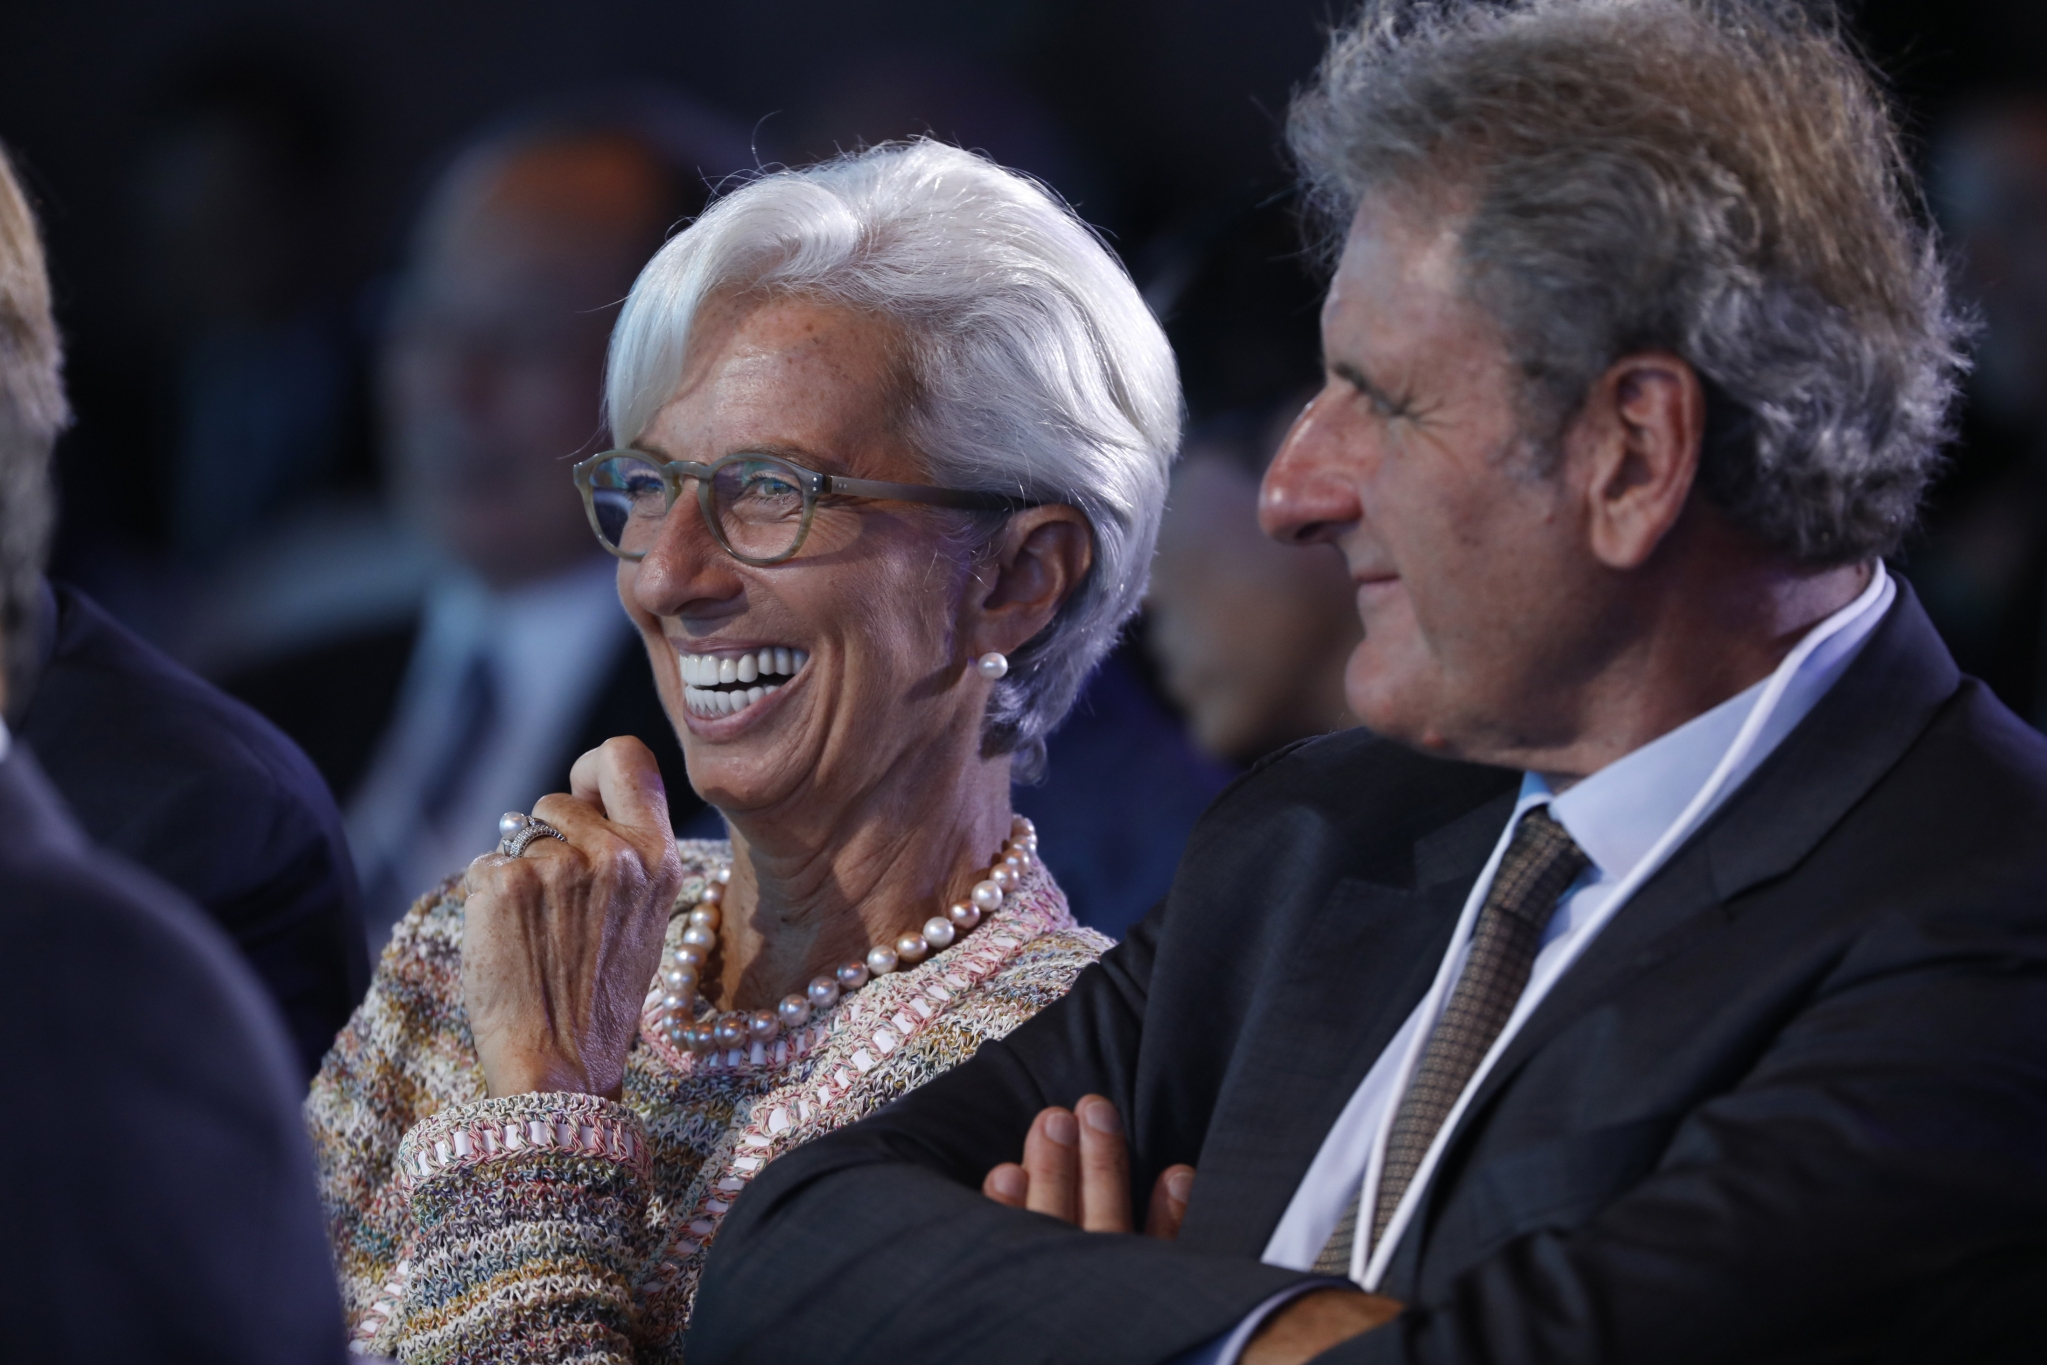 IMF: Christine Lagarde on What Makes Her Laugh